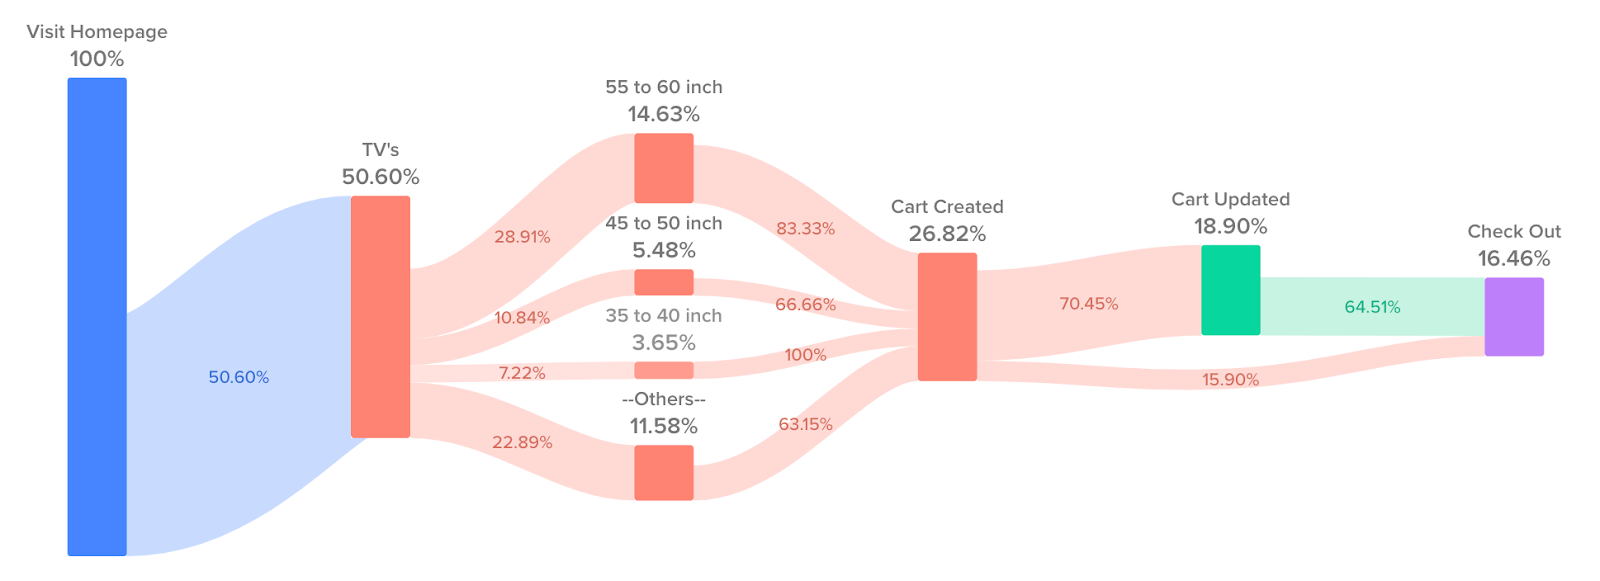 Customer Journey Shopping Experience Figure